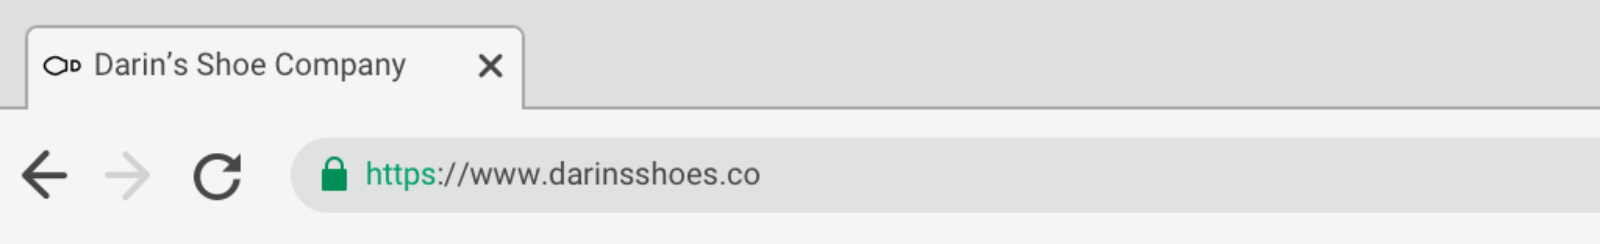 """Browser interface showing one tab labelled """"Darin's Shoe Company"""""""